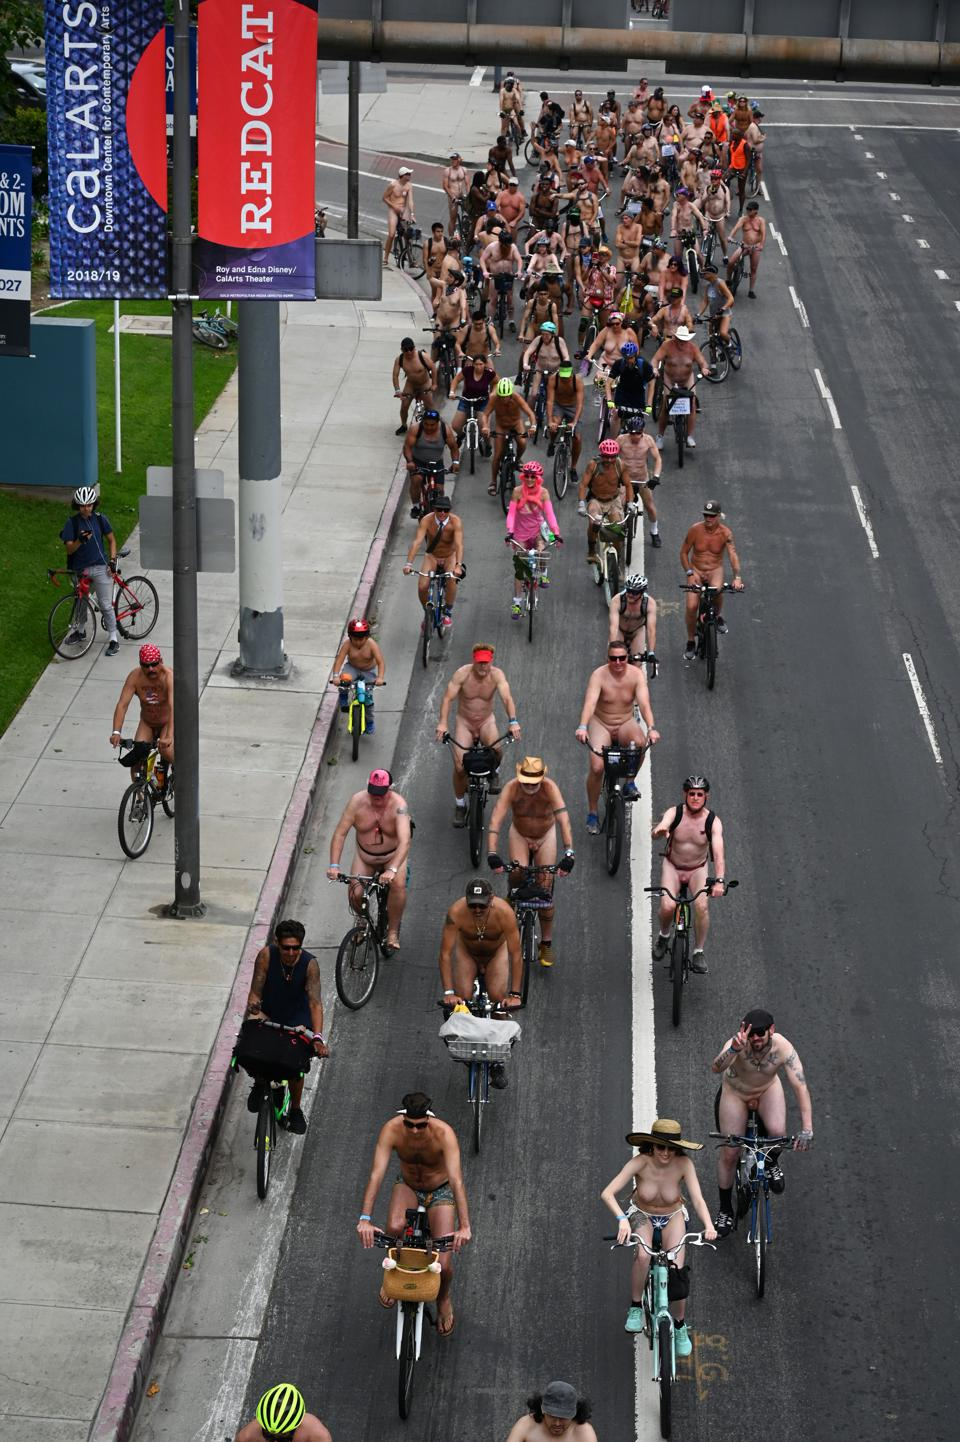 US-CYCLING-NUDE-OFFBEAT-LYFESTYLE